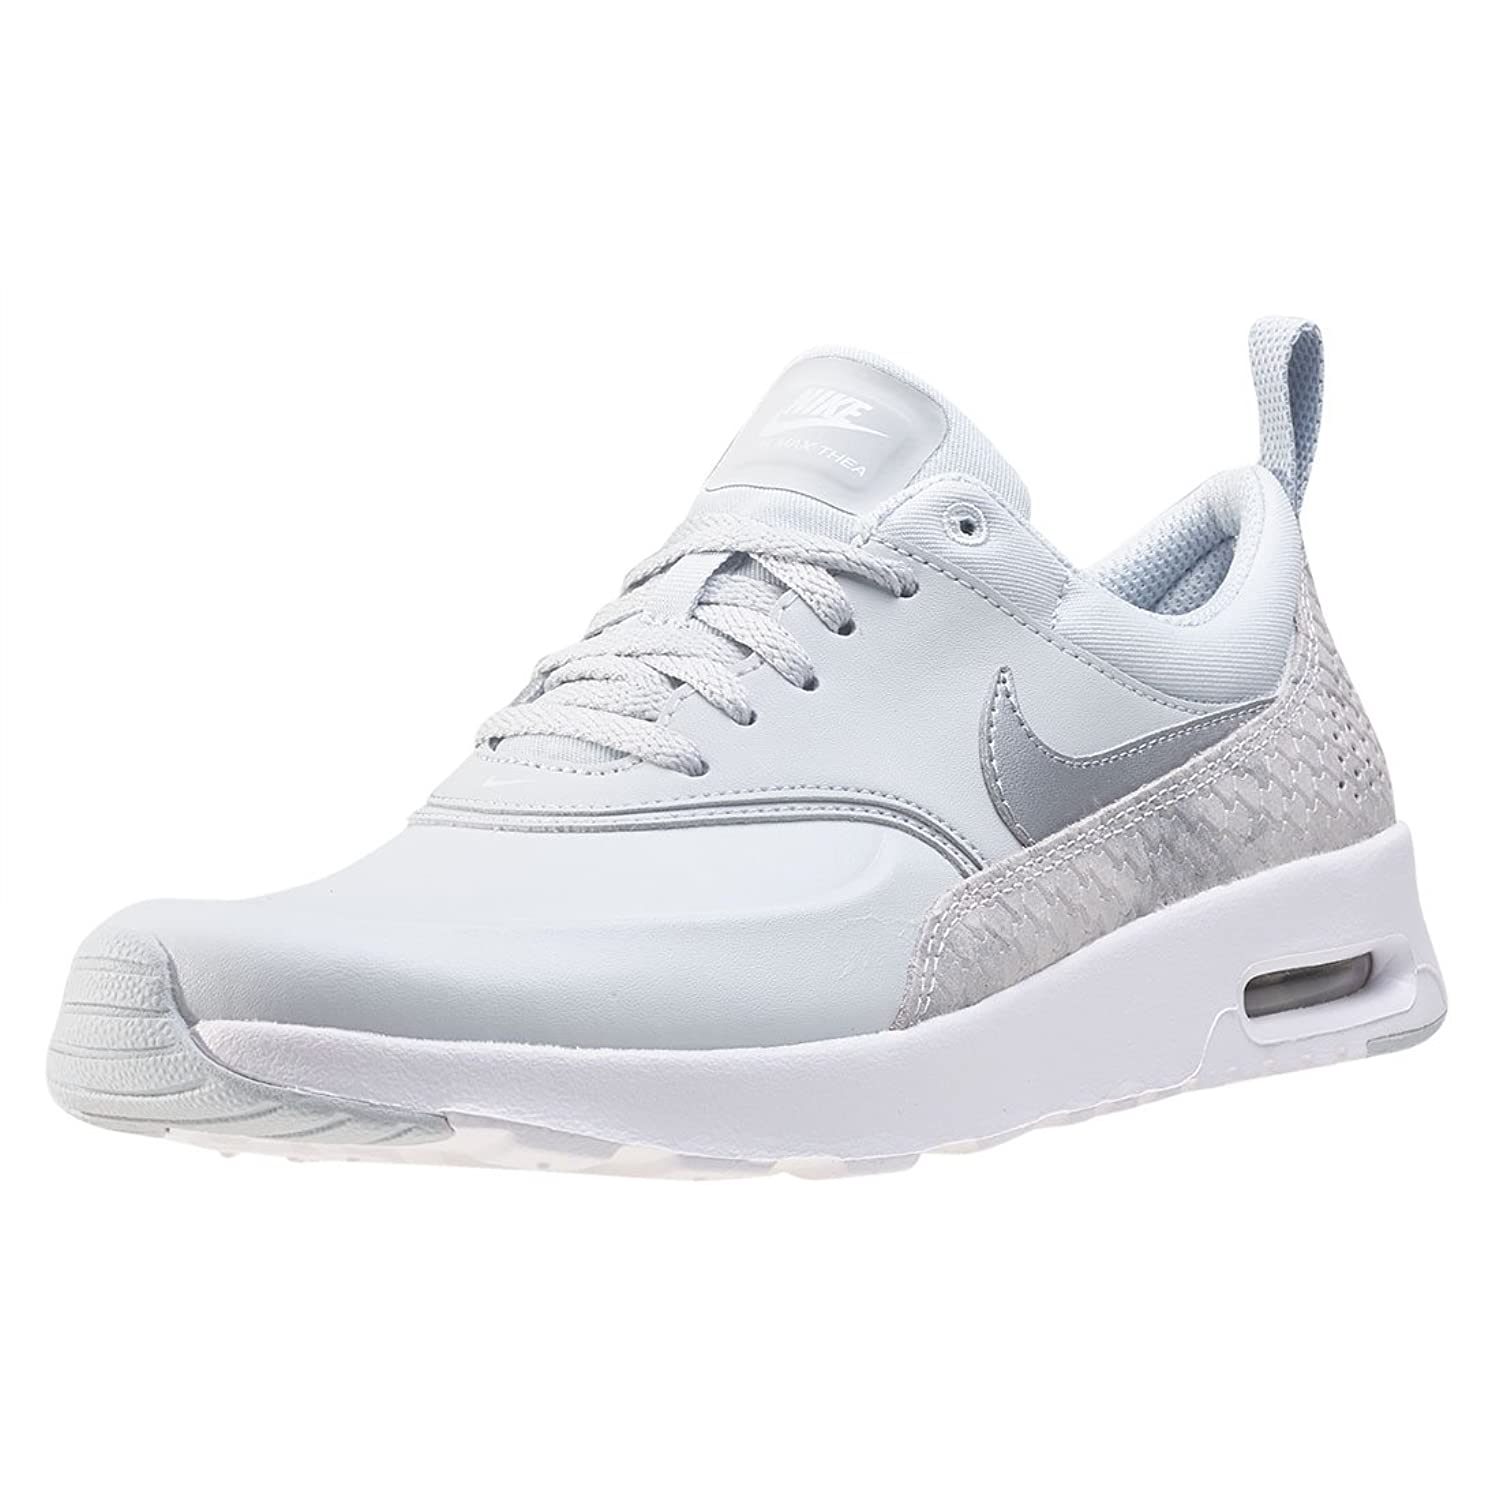 timeless design 59052 3963b Nike WMNS Nike Air Max Thea Premium, Women s Low-Top Sneakers